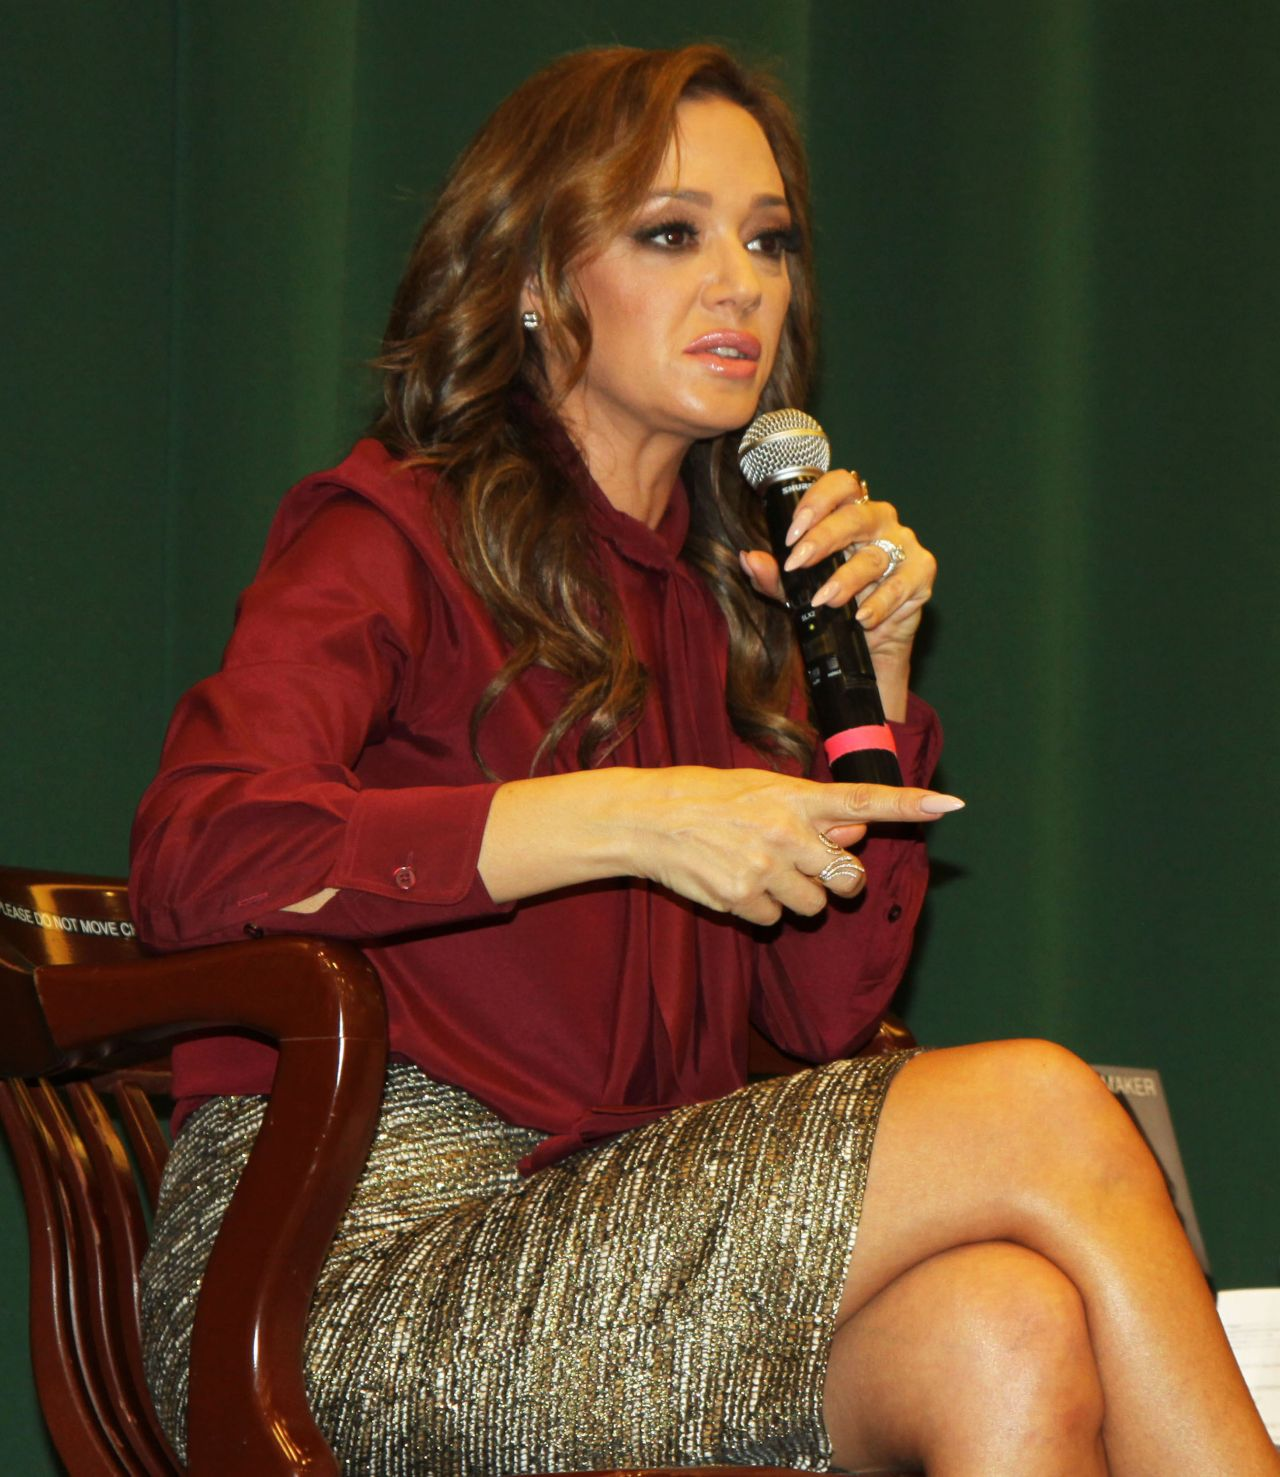 Mafia Girls Wallpaper Leah Remini Troublemaker Surviving Hollywood And